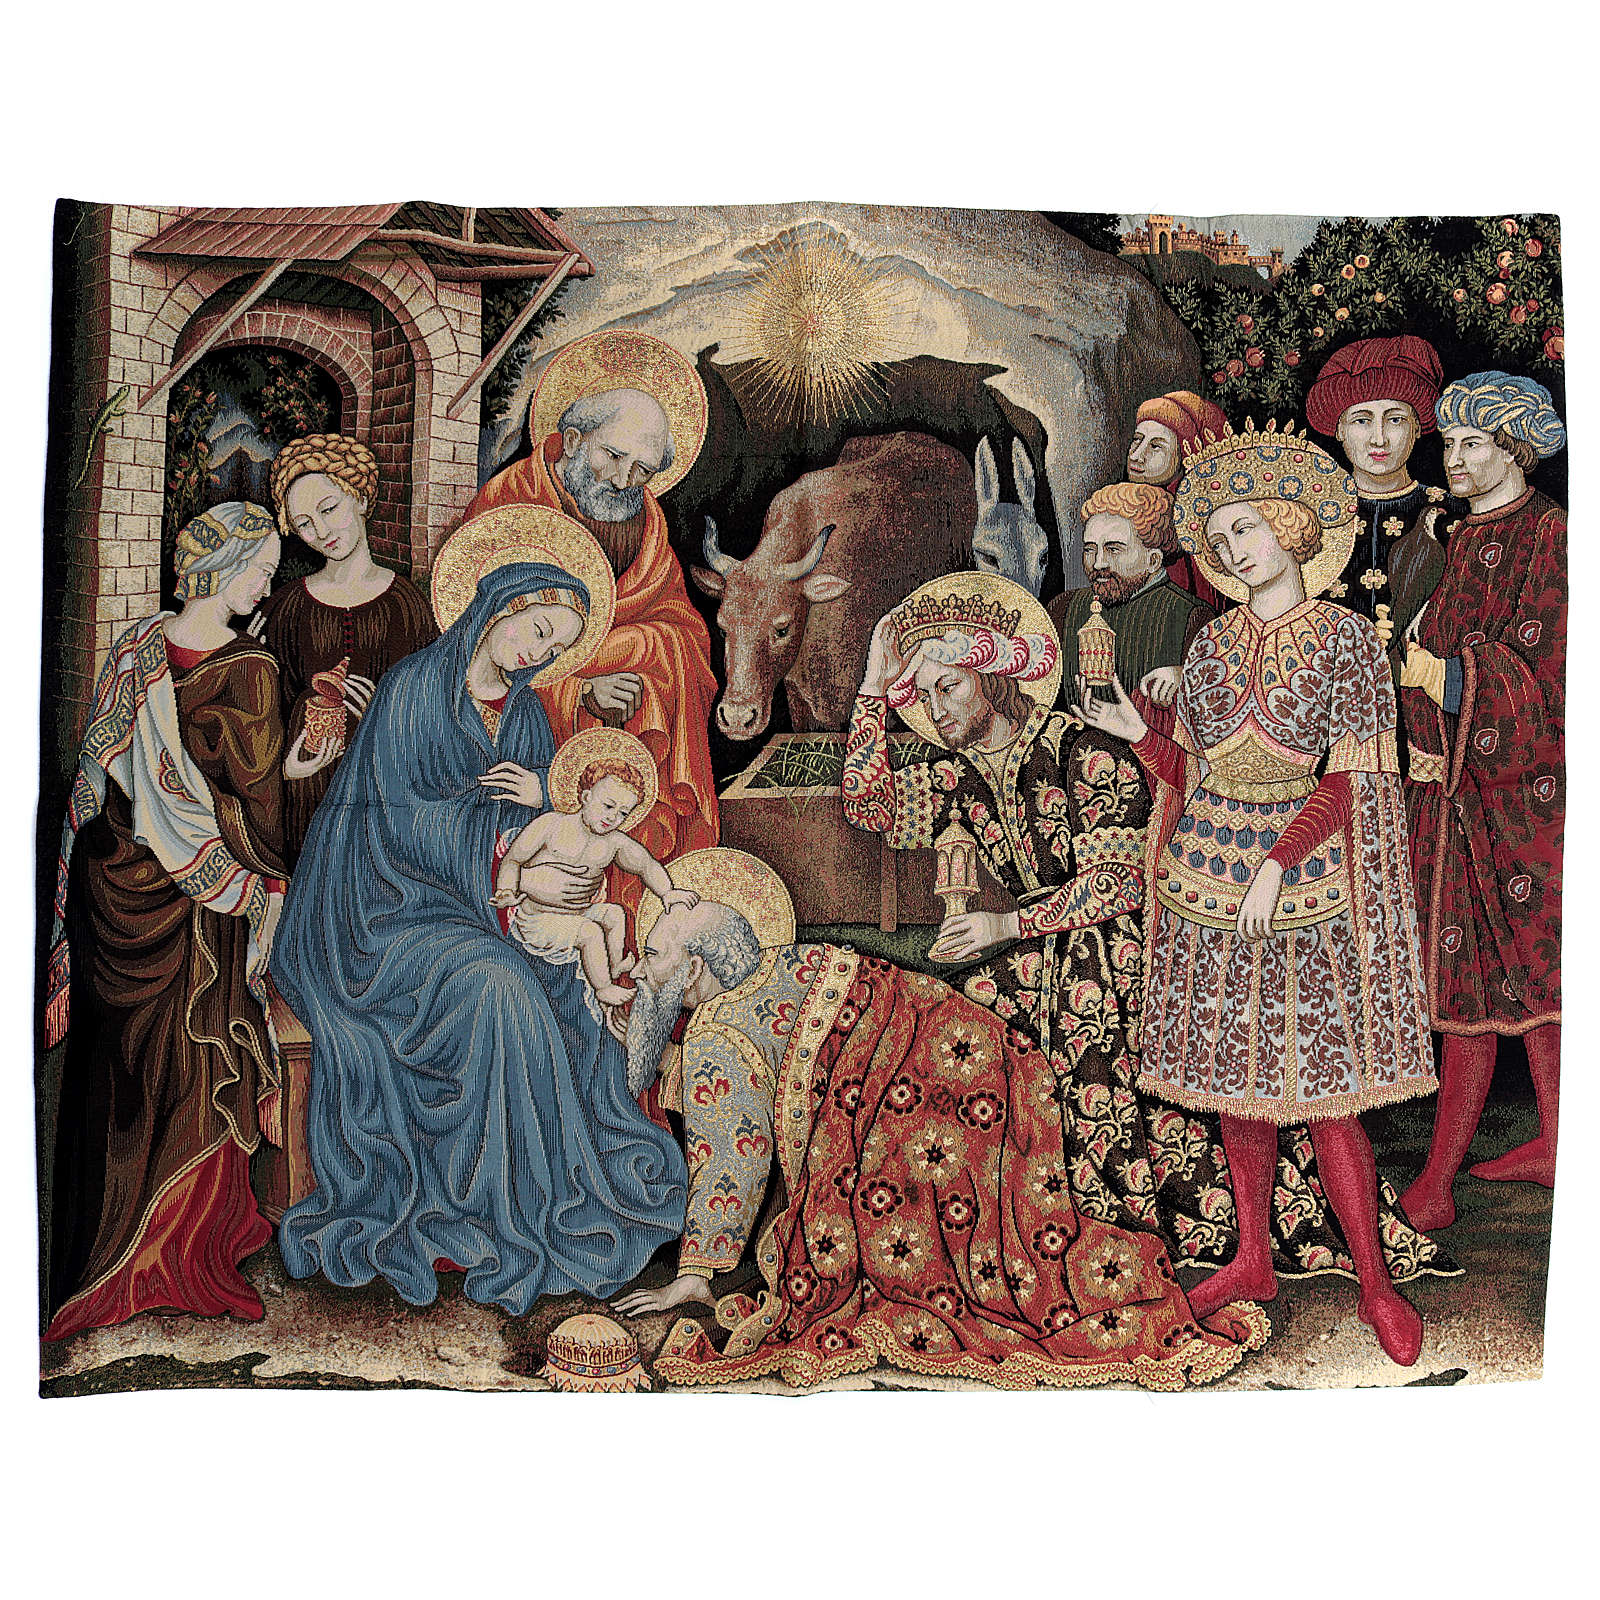 Adoration of the Magi by Gentile da Fabriano Tapestry 105x130cm 3